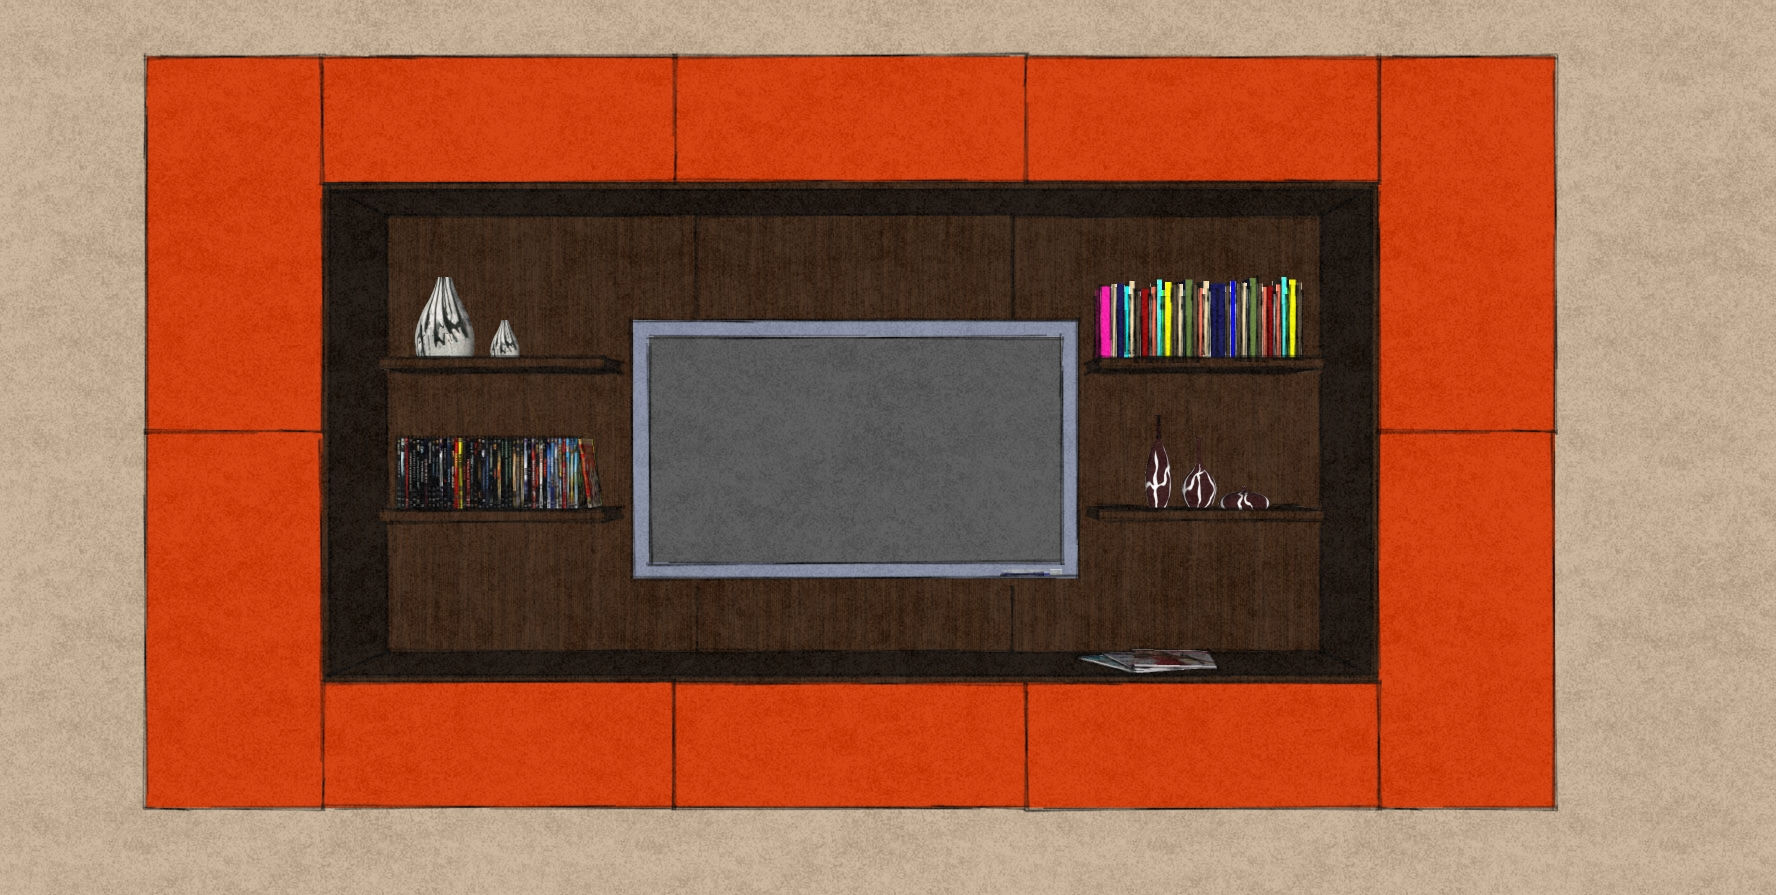 D2 wall hung media wall with orange lacquer cabinet surround and Therm Oak back panels and shelves.jpg